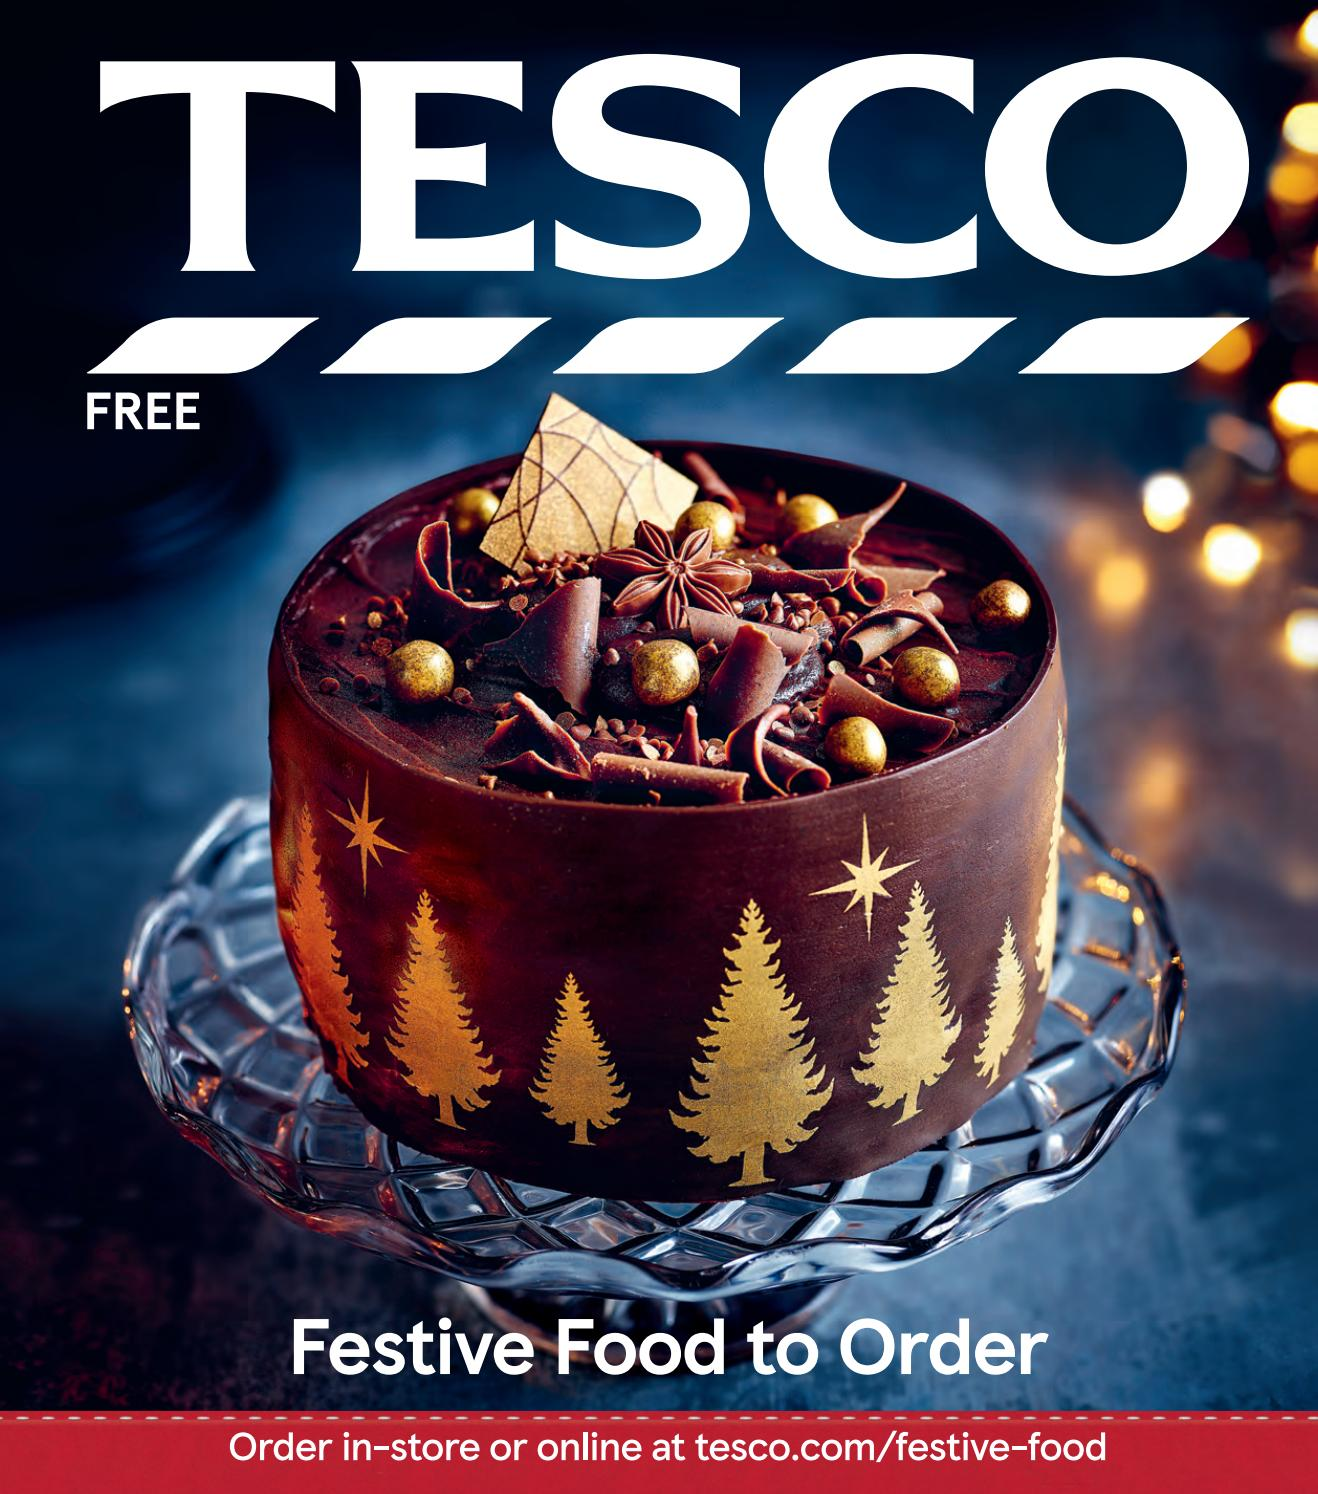 Tesco Festive Food To Order 2018 By Tesco Magazine Issuu